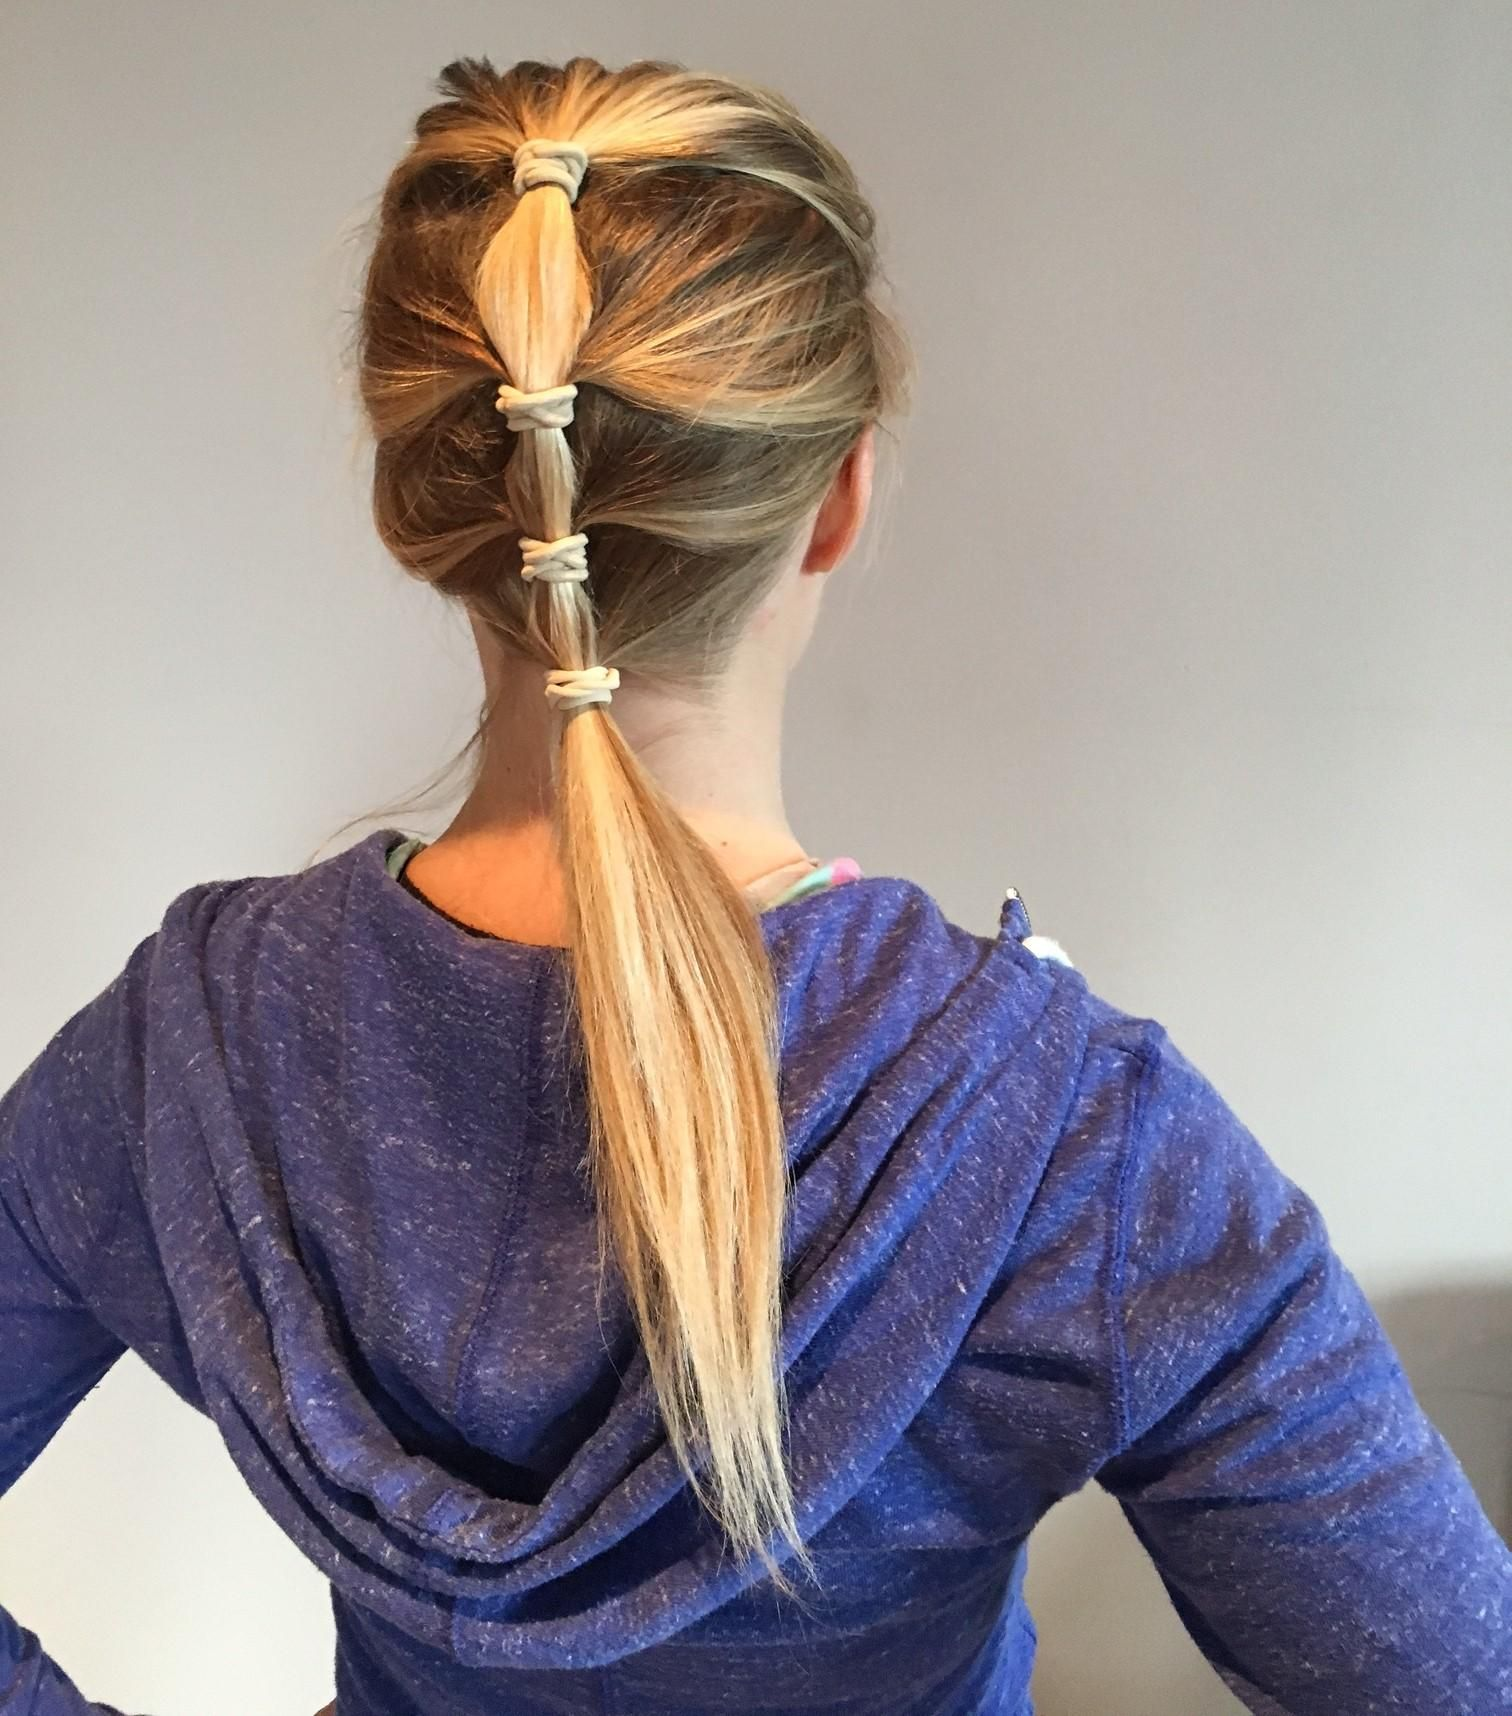 Hairstyles For Running And Triathlons Hair Styles Race Day Hair Find Hairstyles